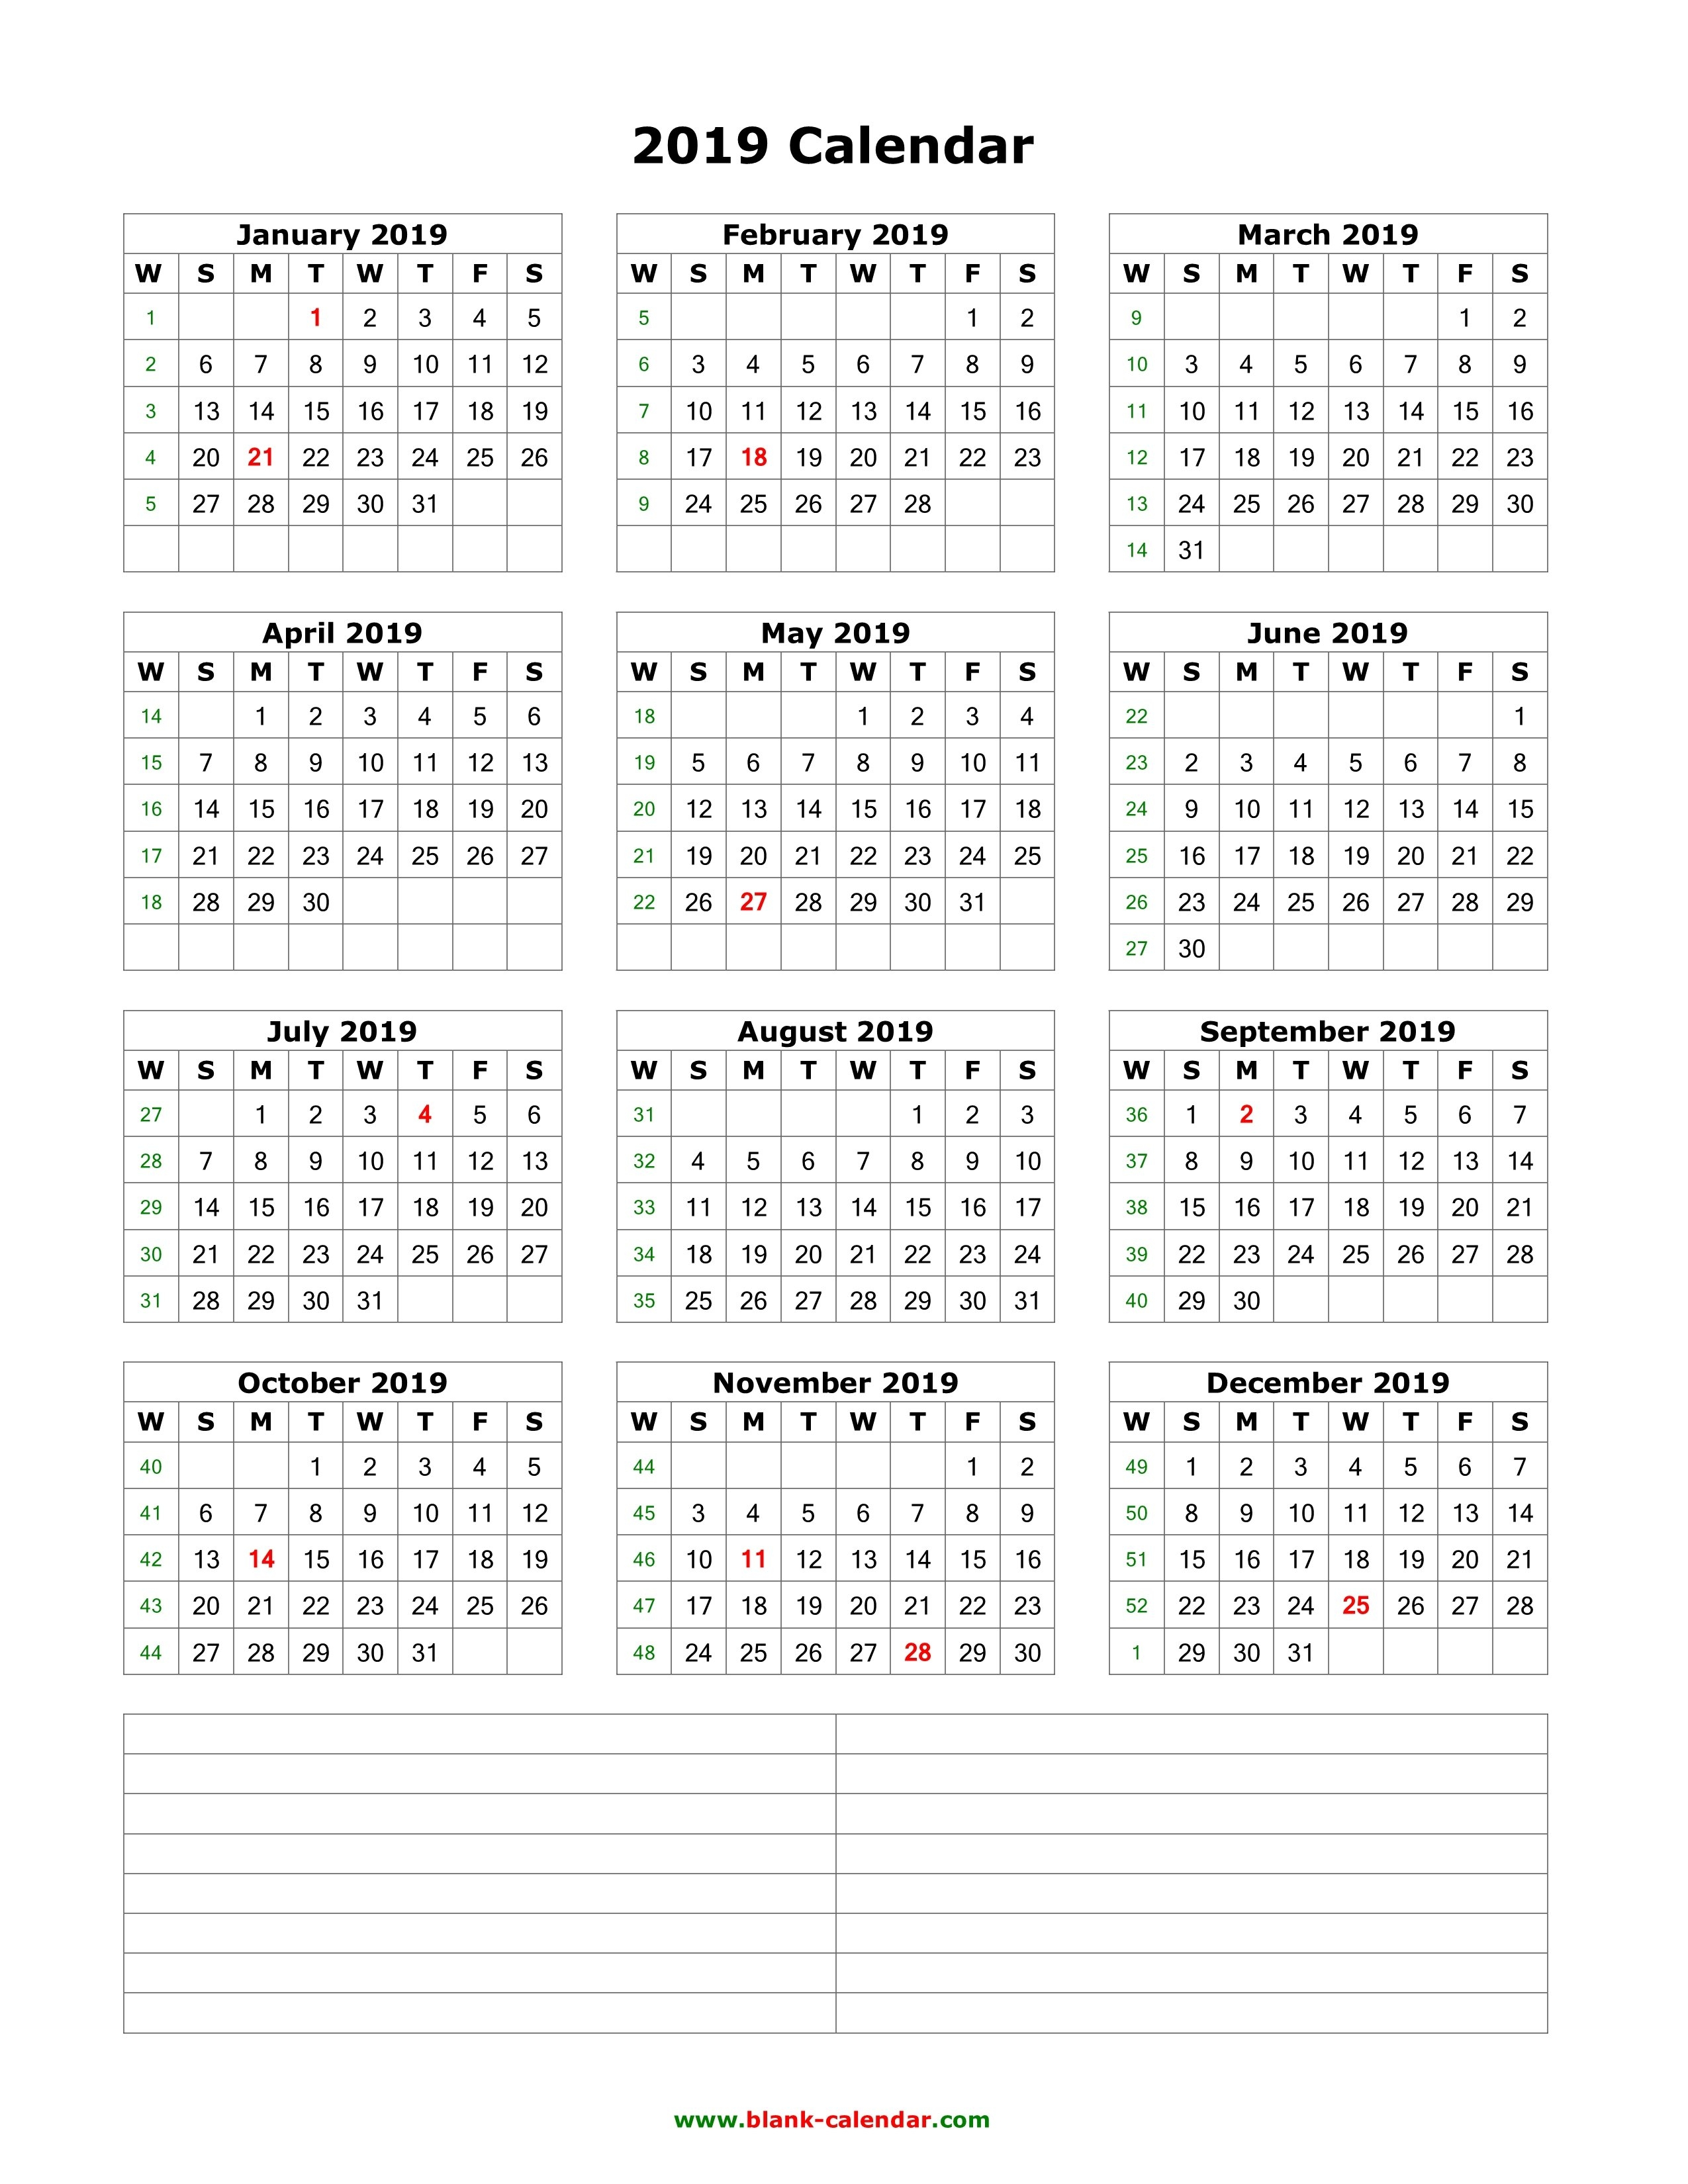 Download Blank Calendar 2019 With Space For Notes (12 Months On One 1 Page Yearly Calendar 2019